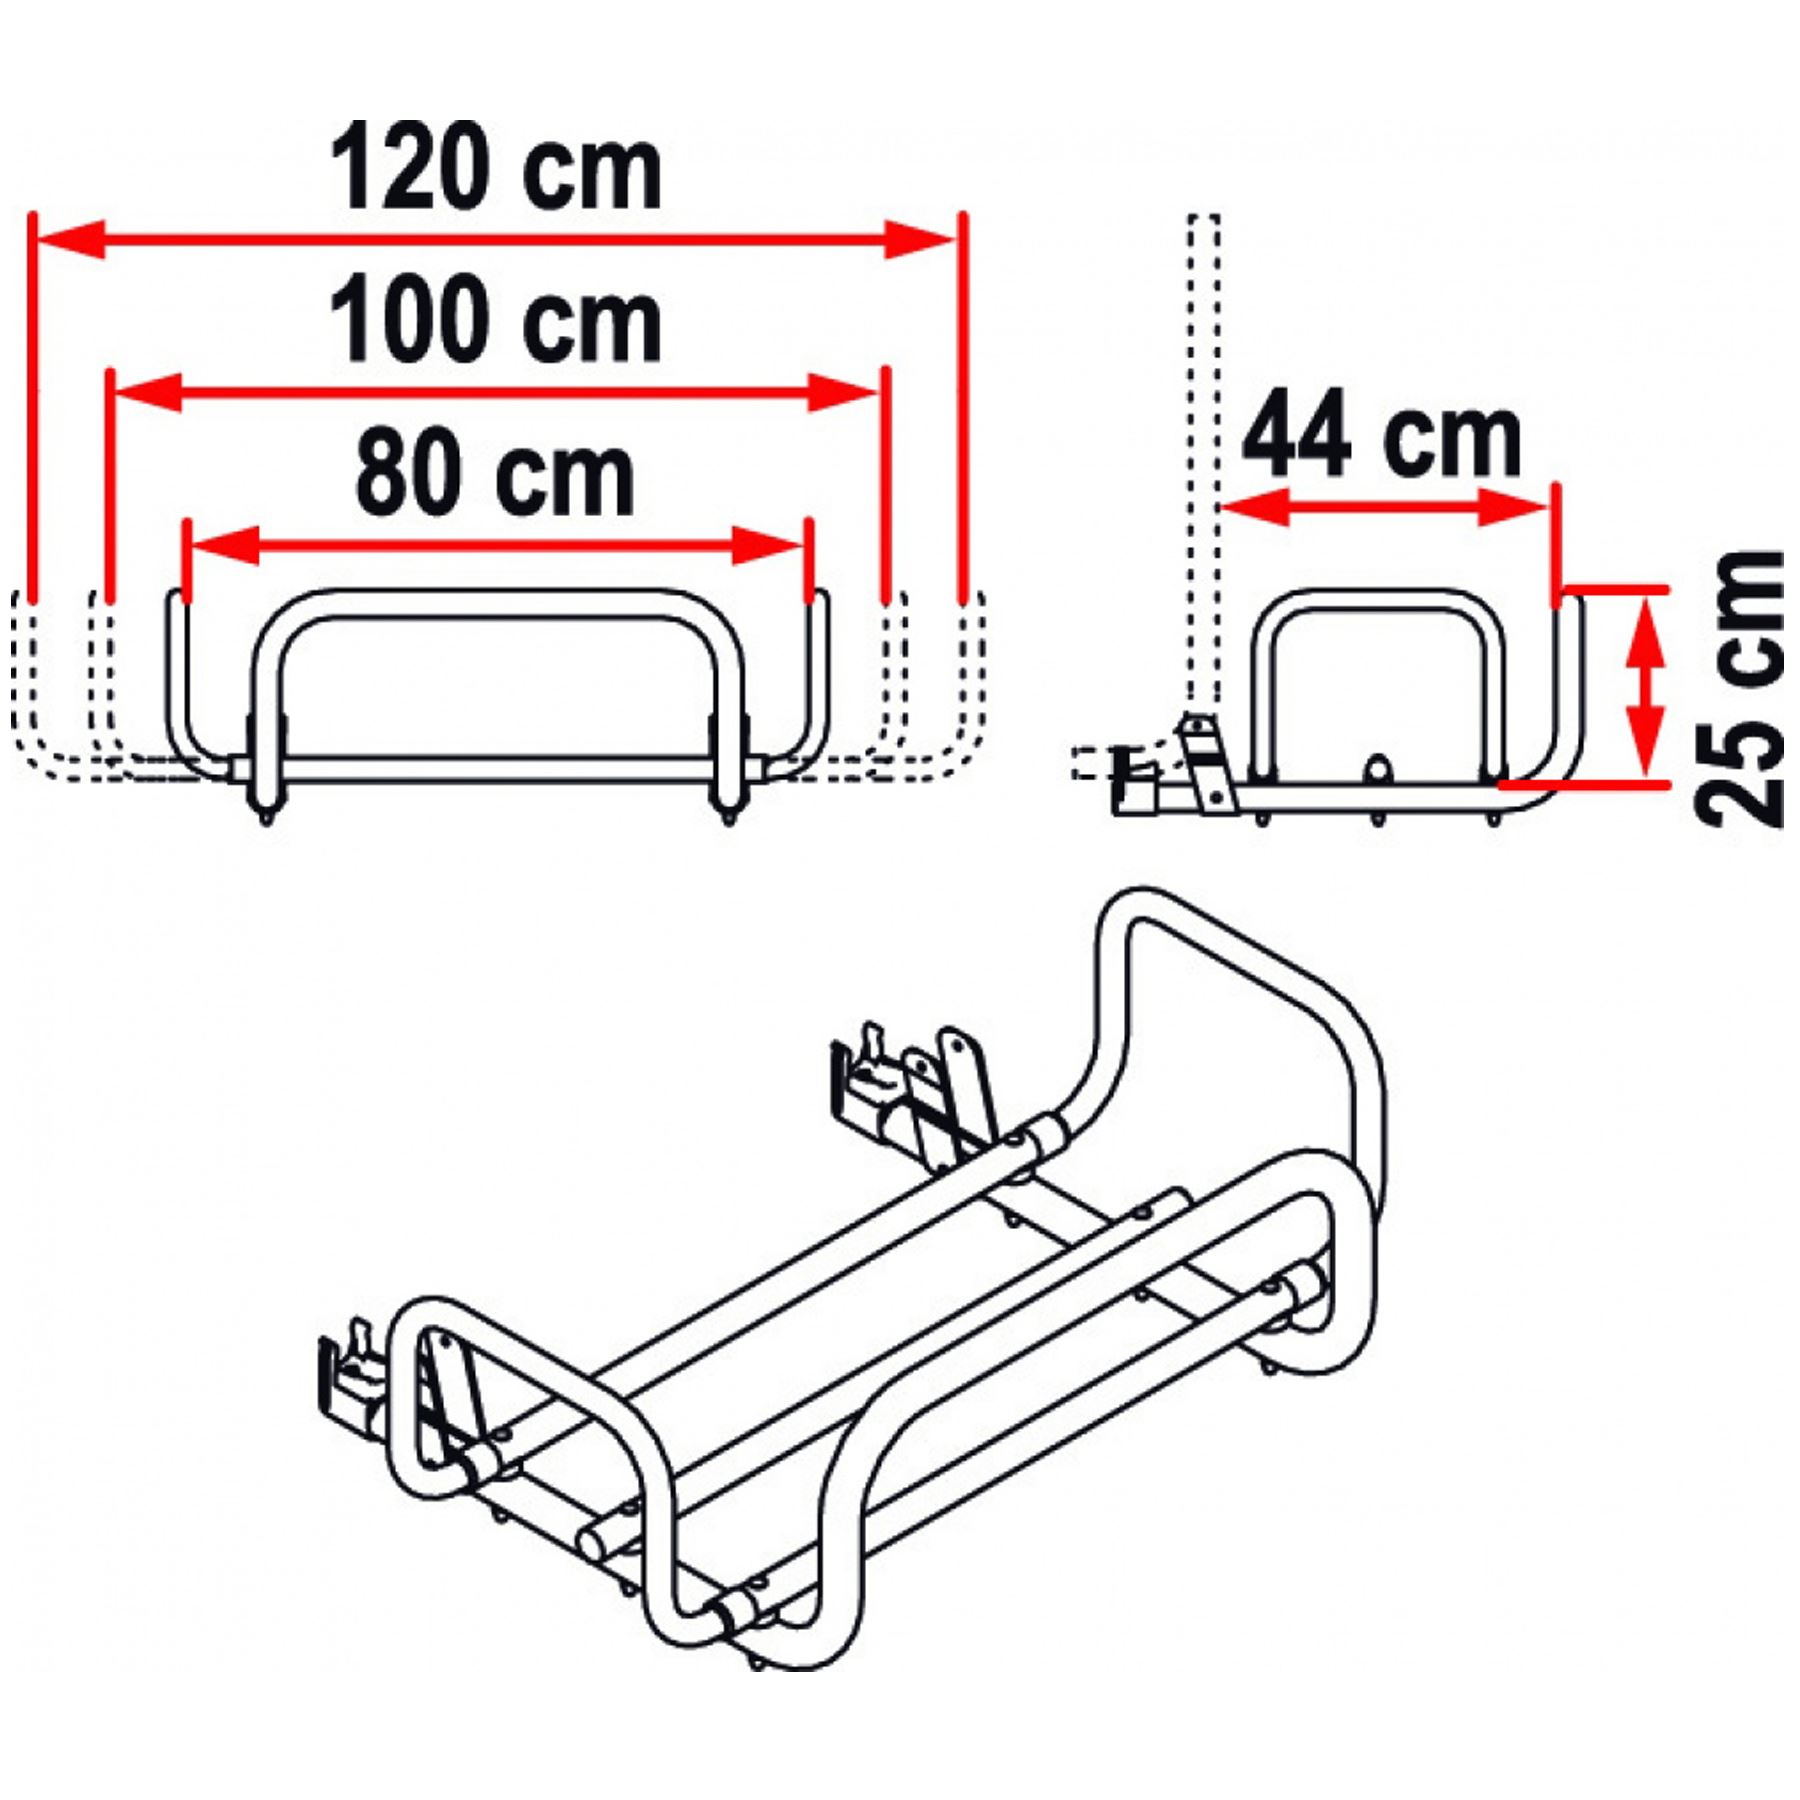 Fiamma Kit Carry Box For Bike Pro Cycle Rail Rack Carrier